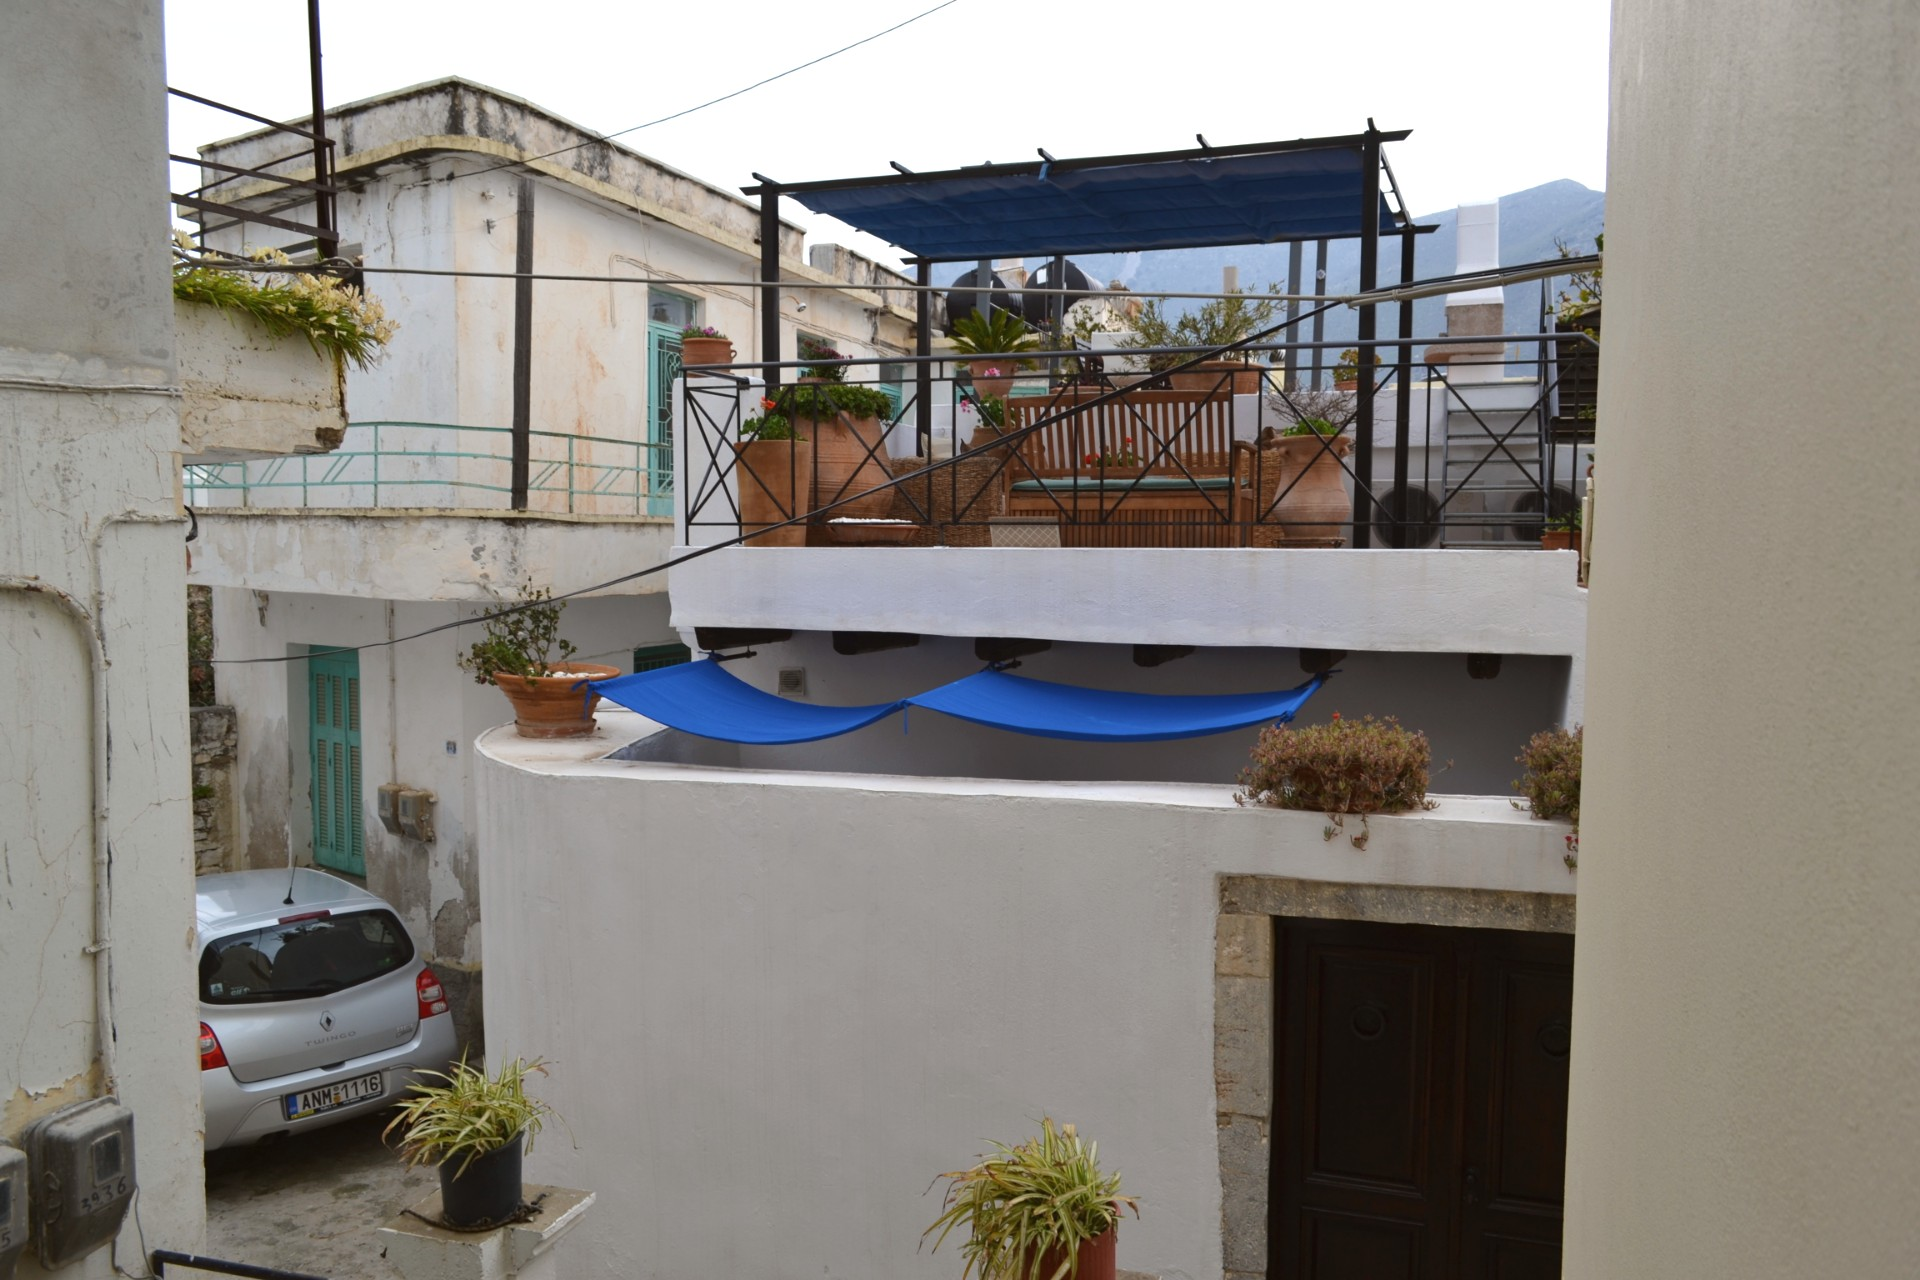 2 bedroom house two minute walk to centre of town. Sold fully furnished.